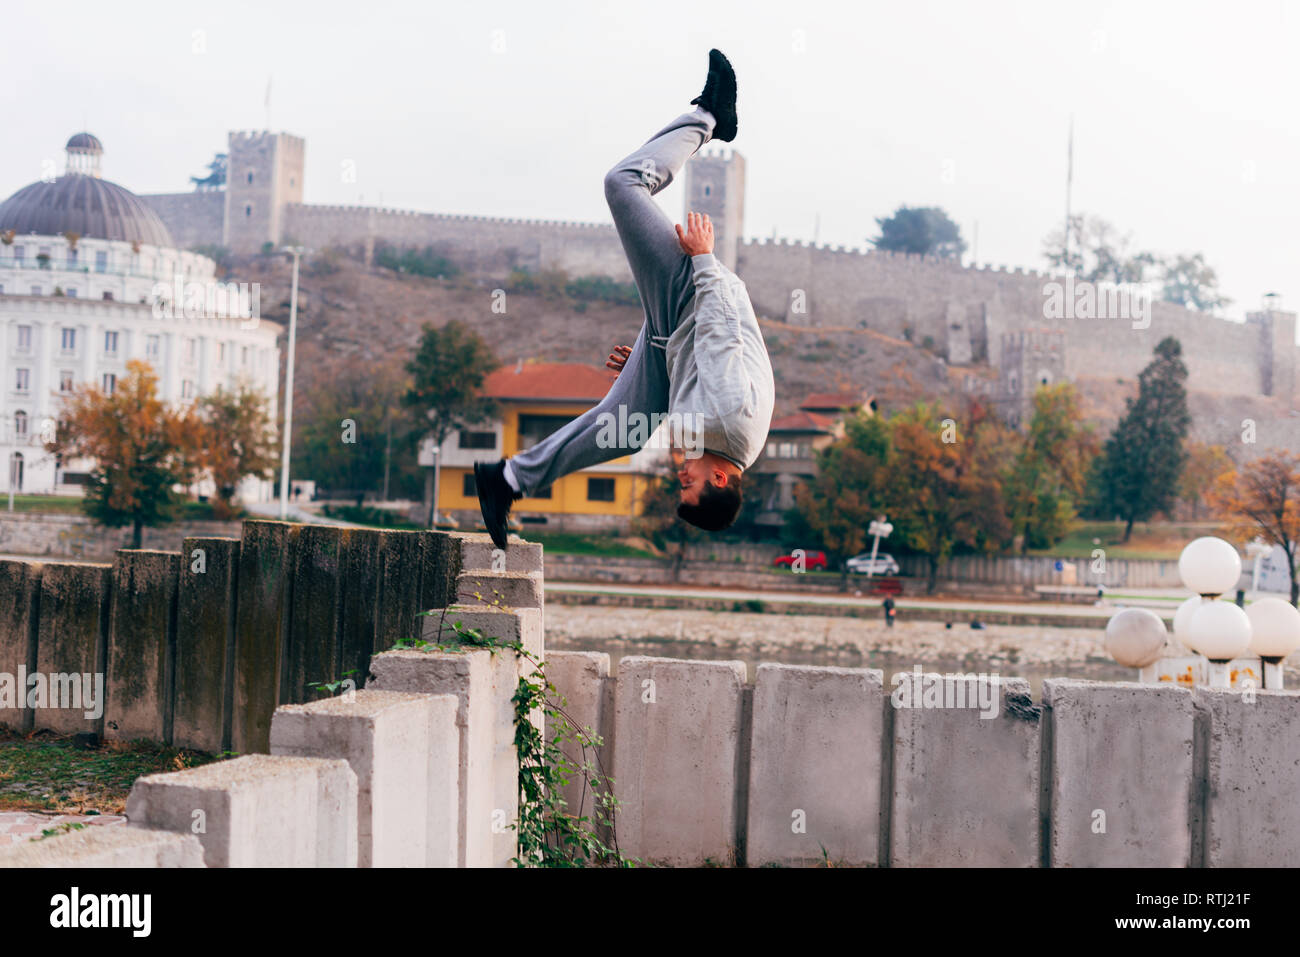 Free runner training parkour jumping on a fence while doing a back flip in the air. - Stock Image